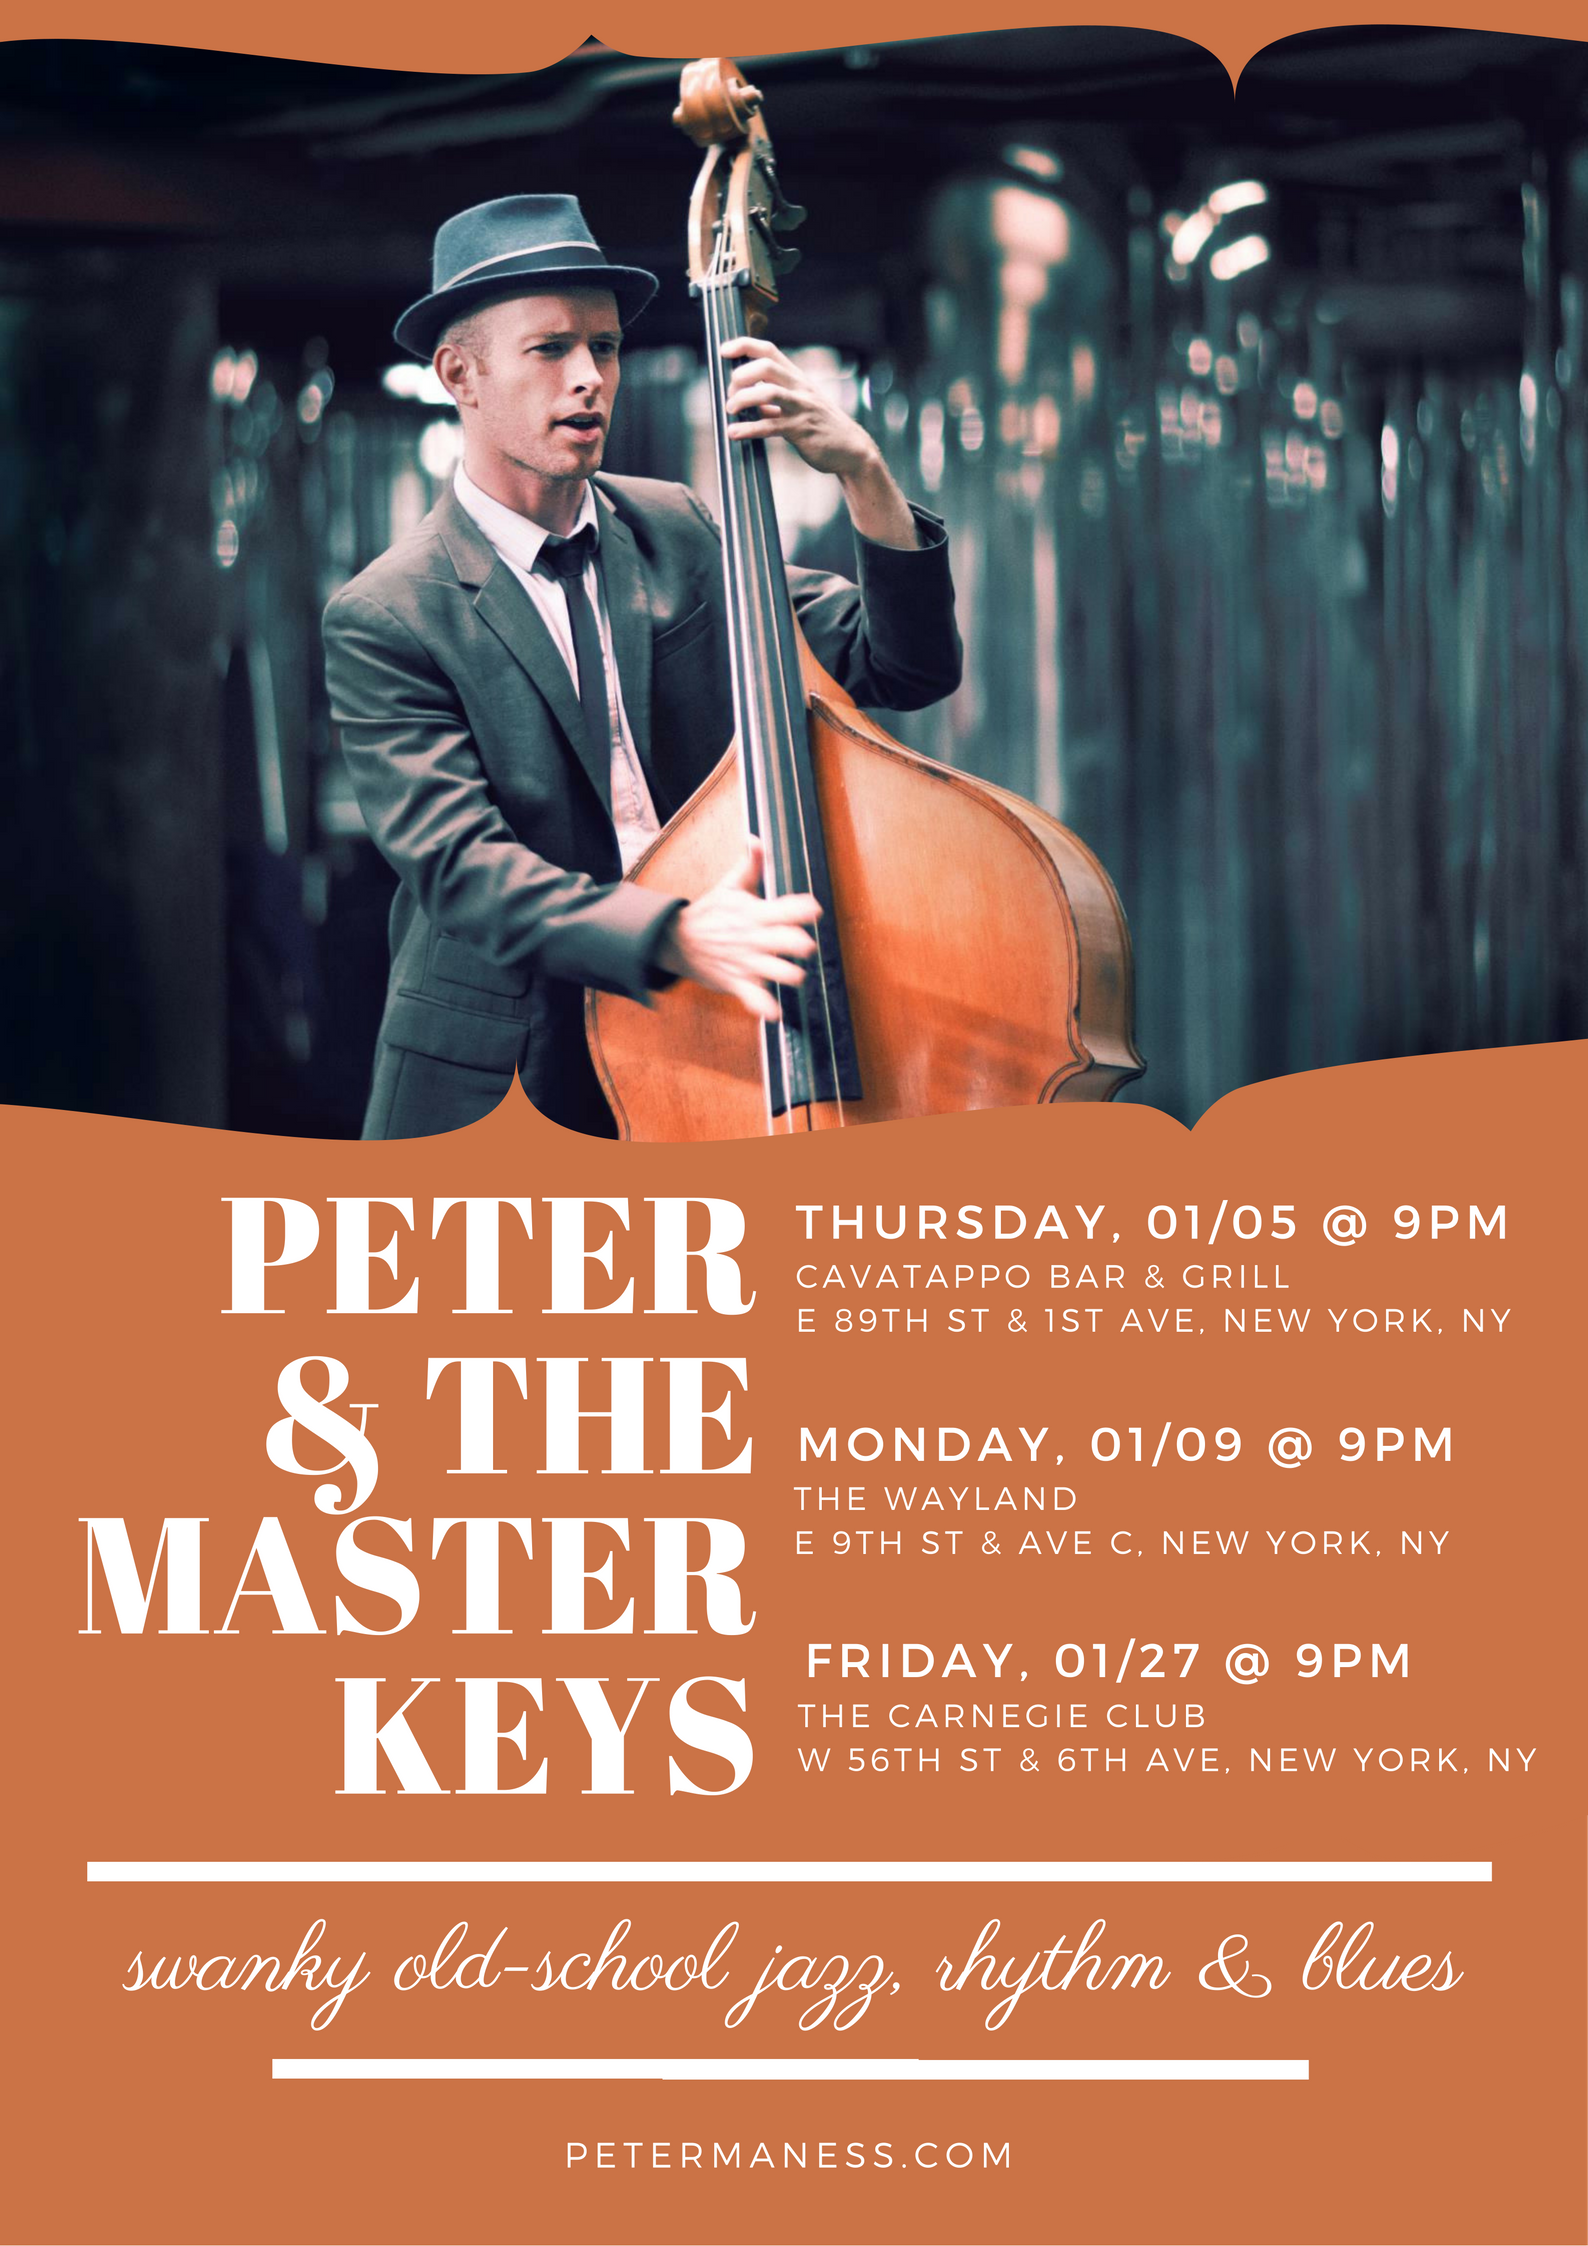 peter & the master keys are New york's best jazz band for wedding receptions